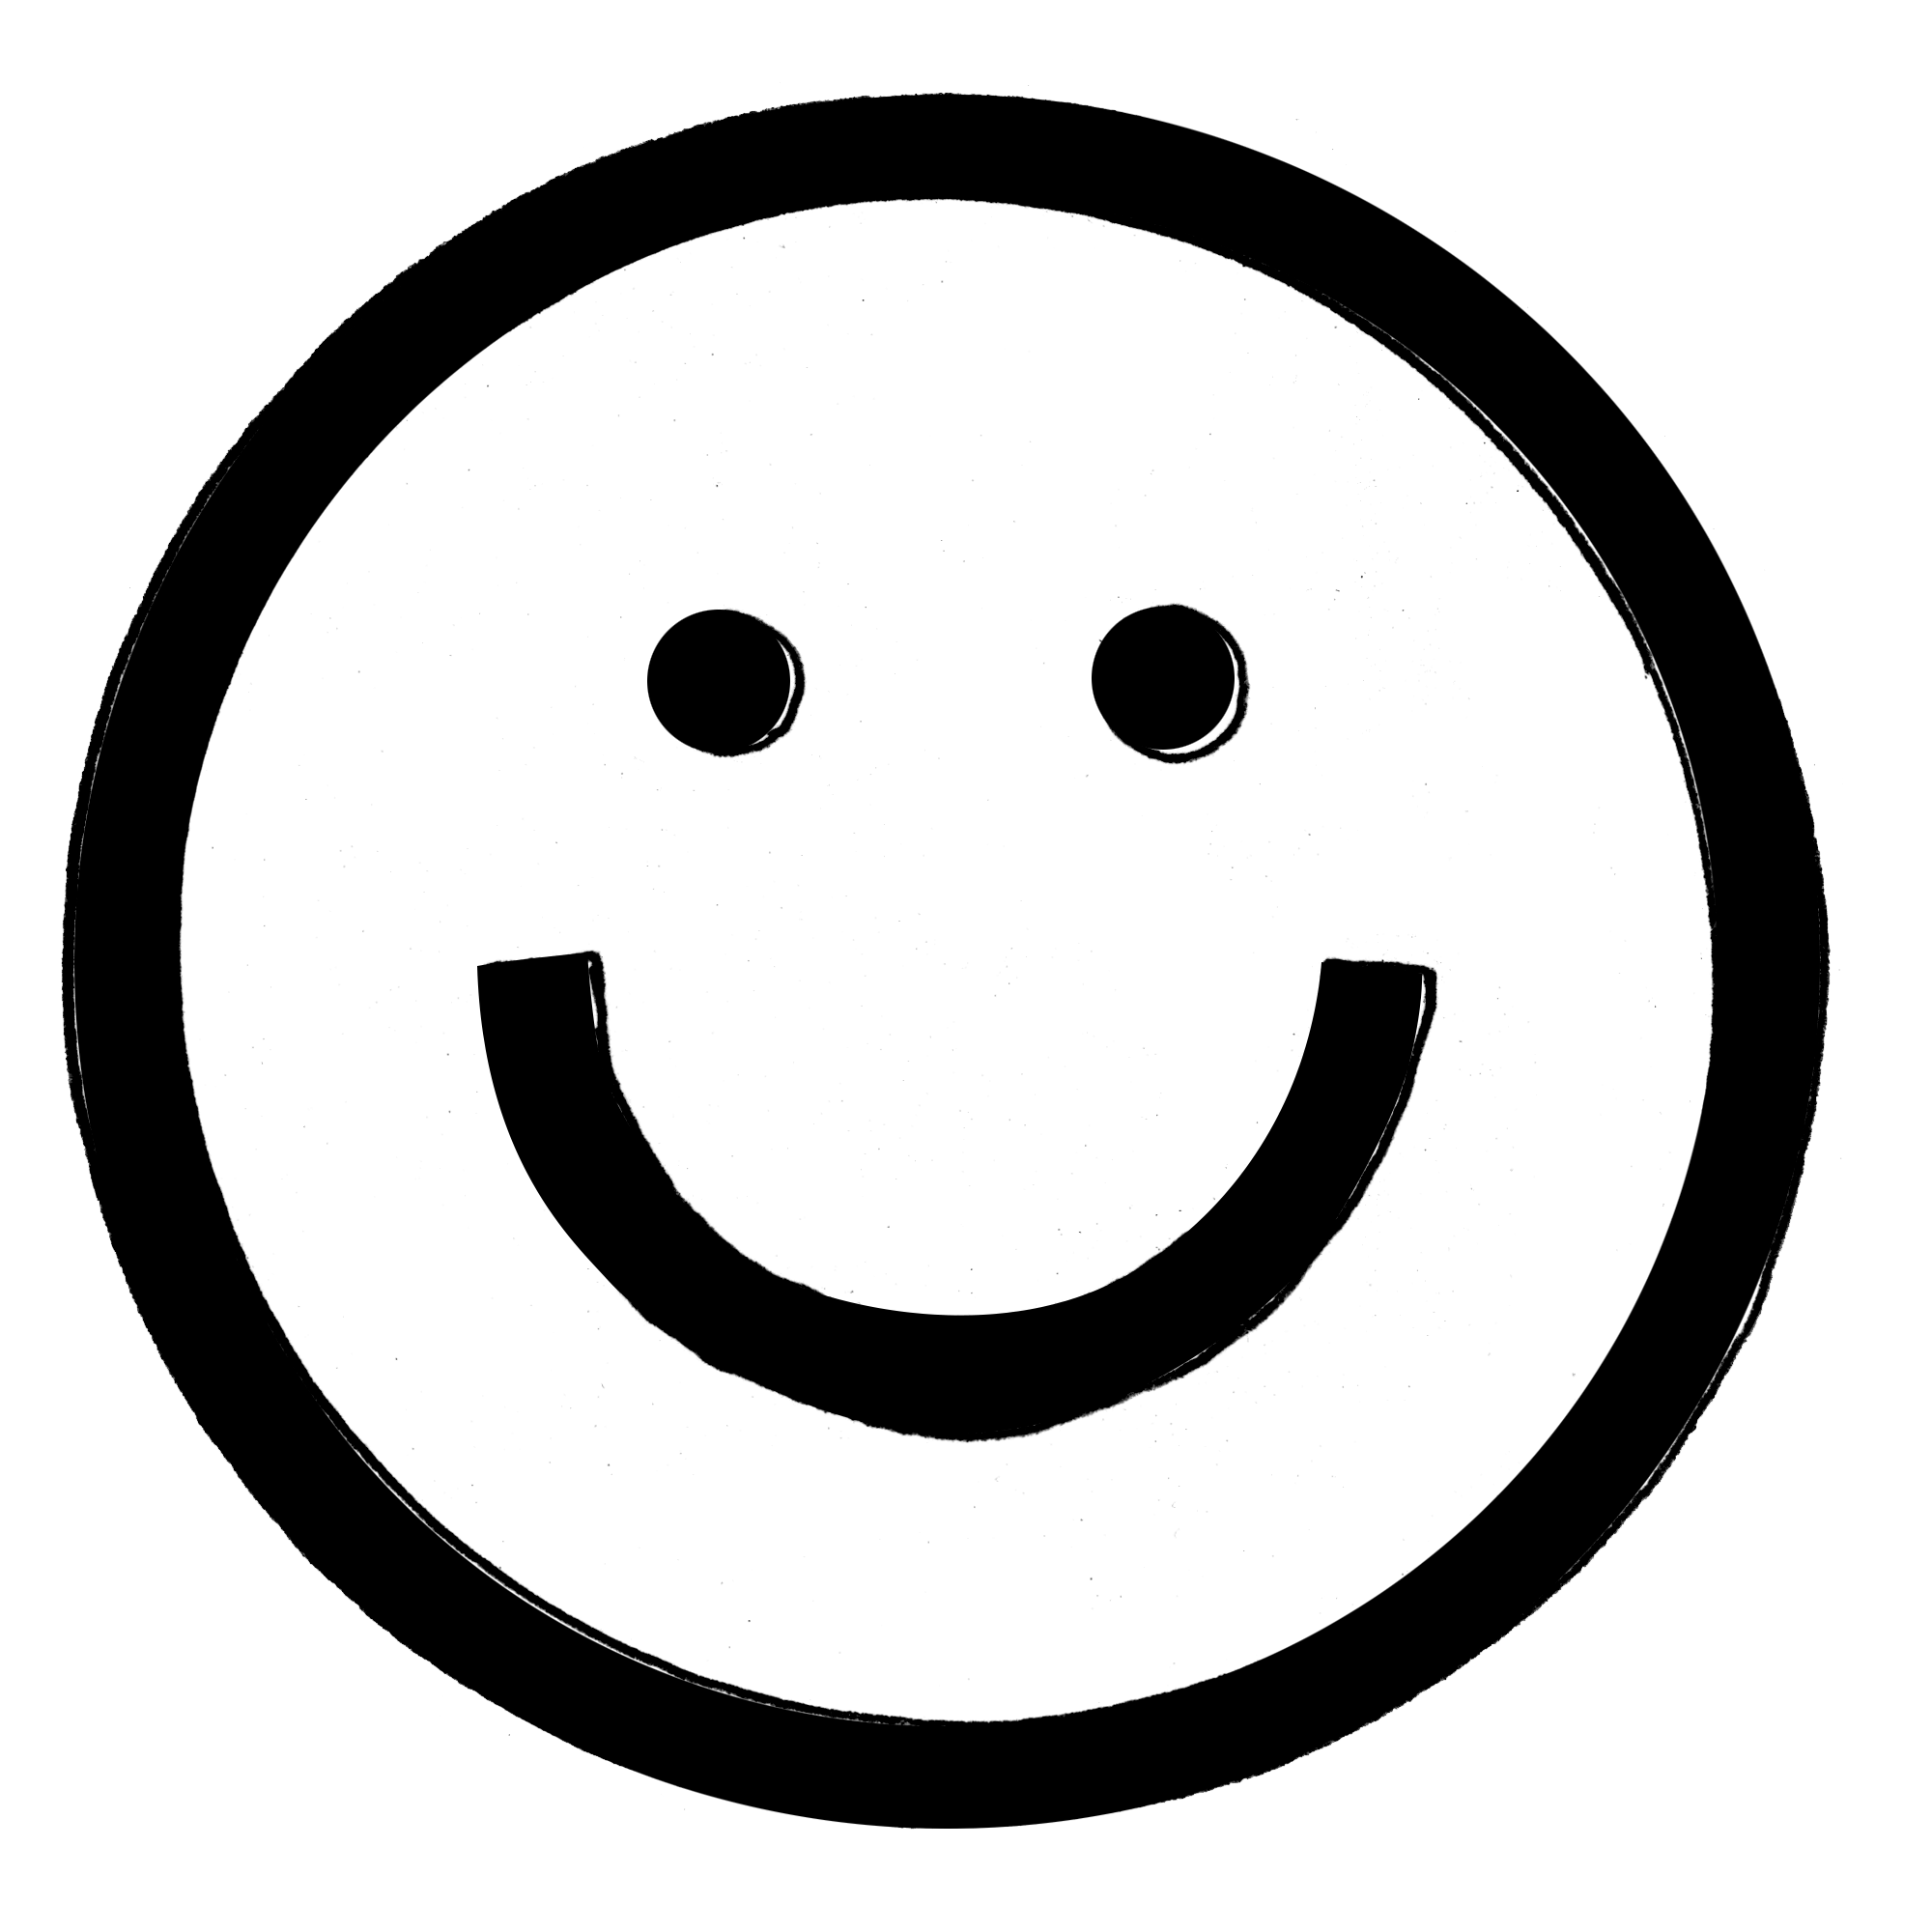 Sherlock smiley face png. Smileys pinterest and facepng